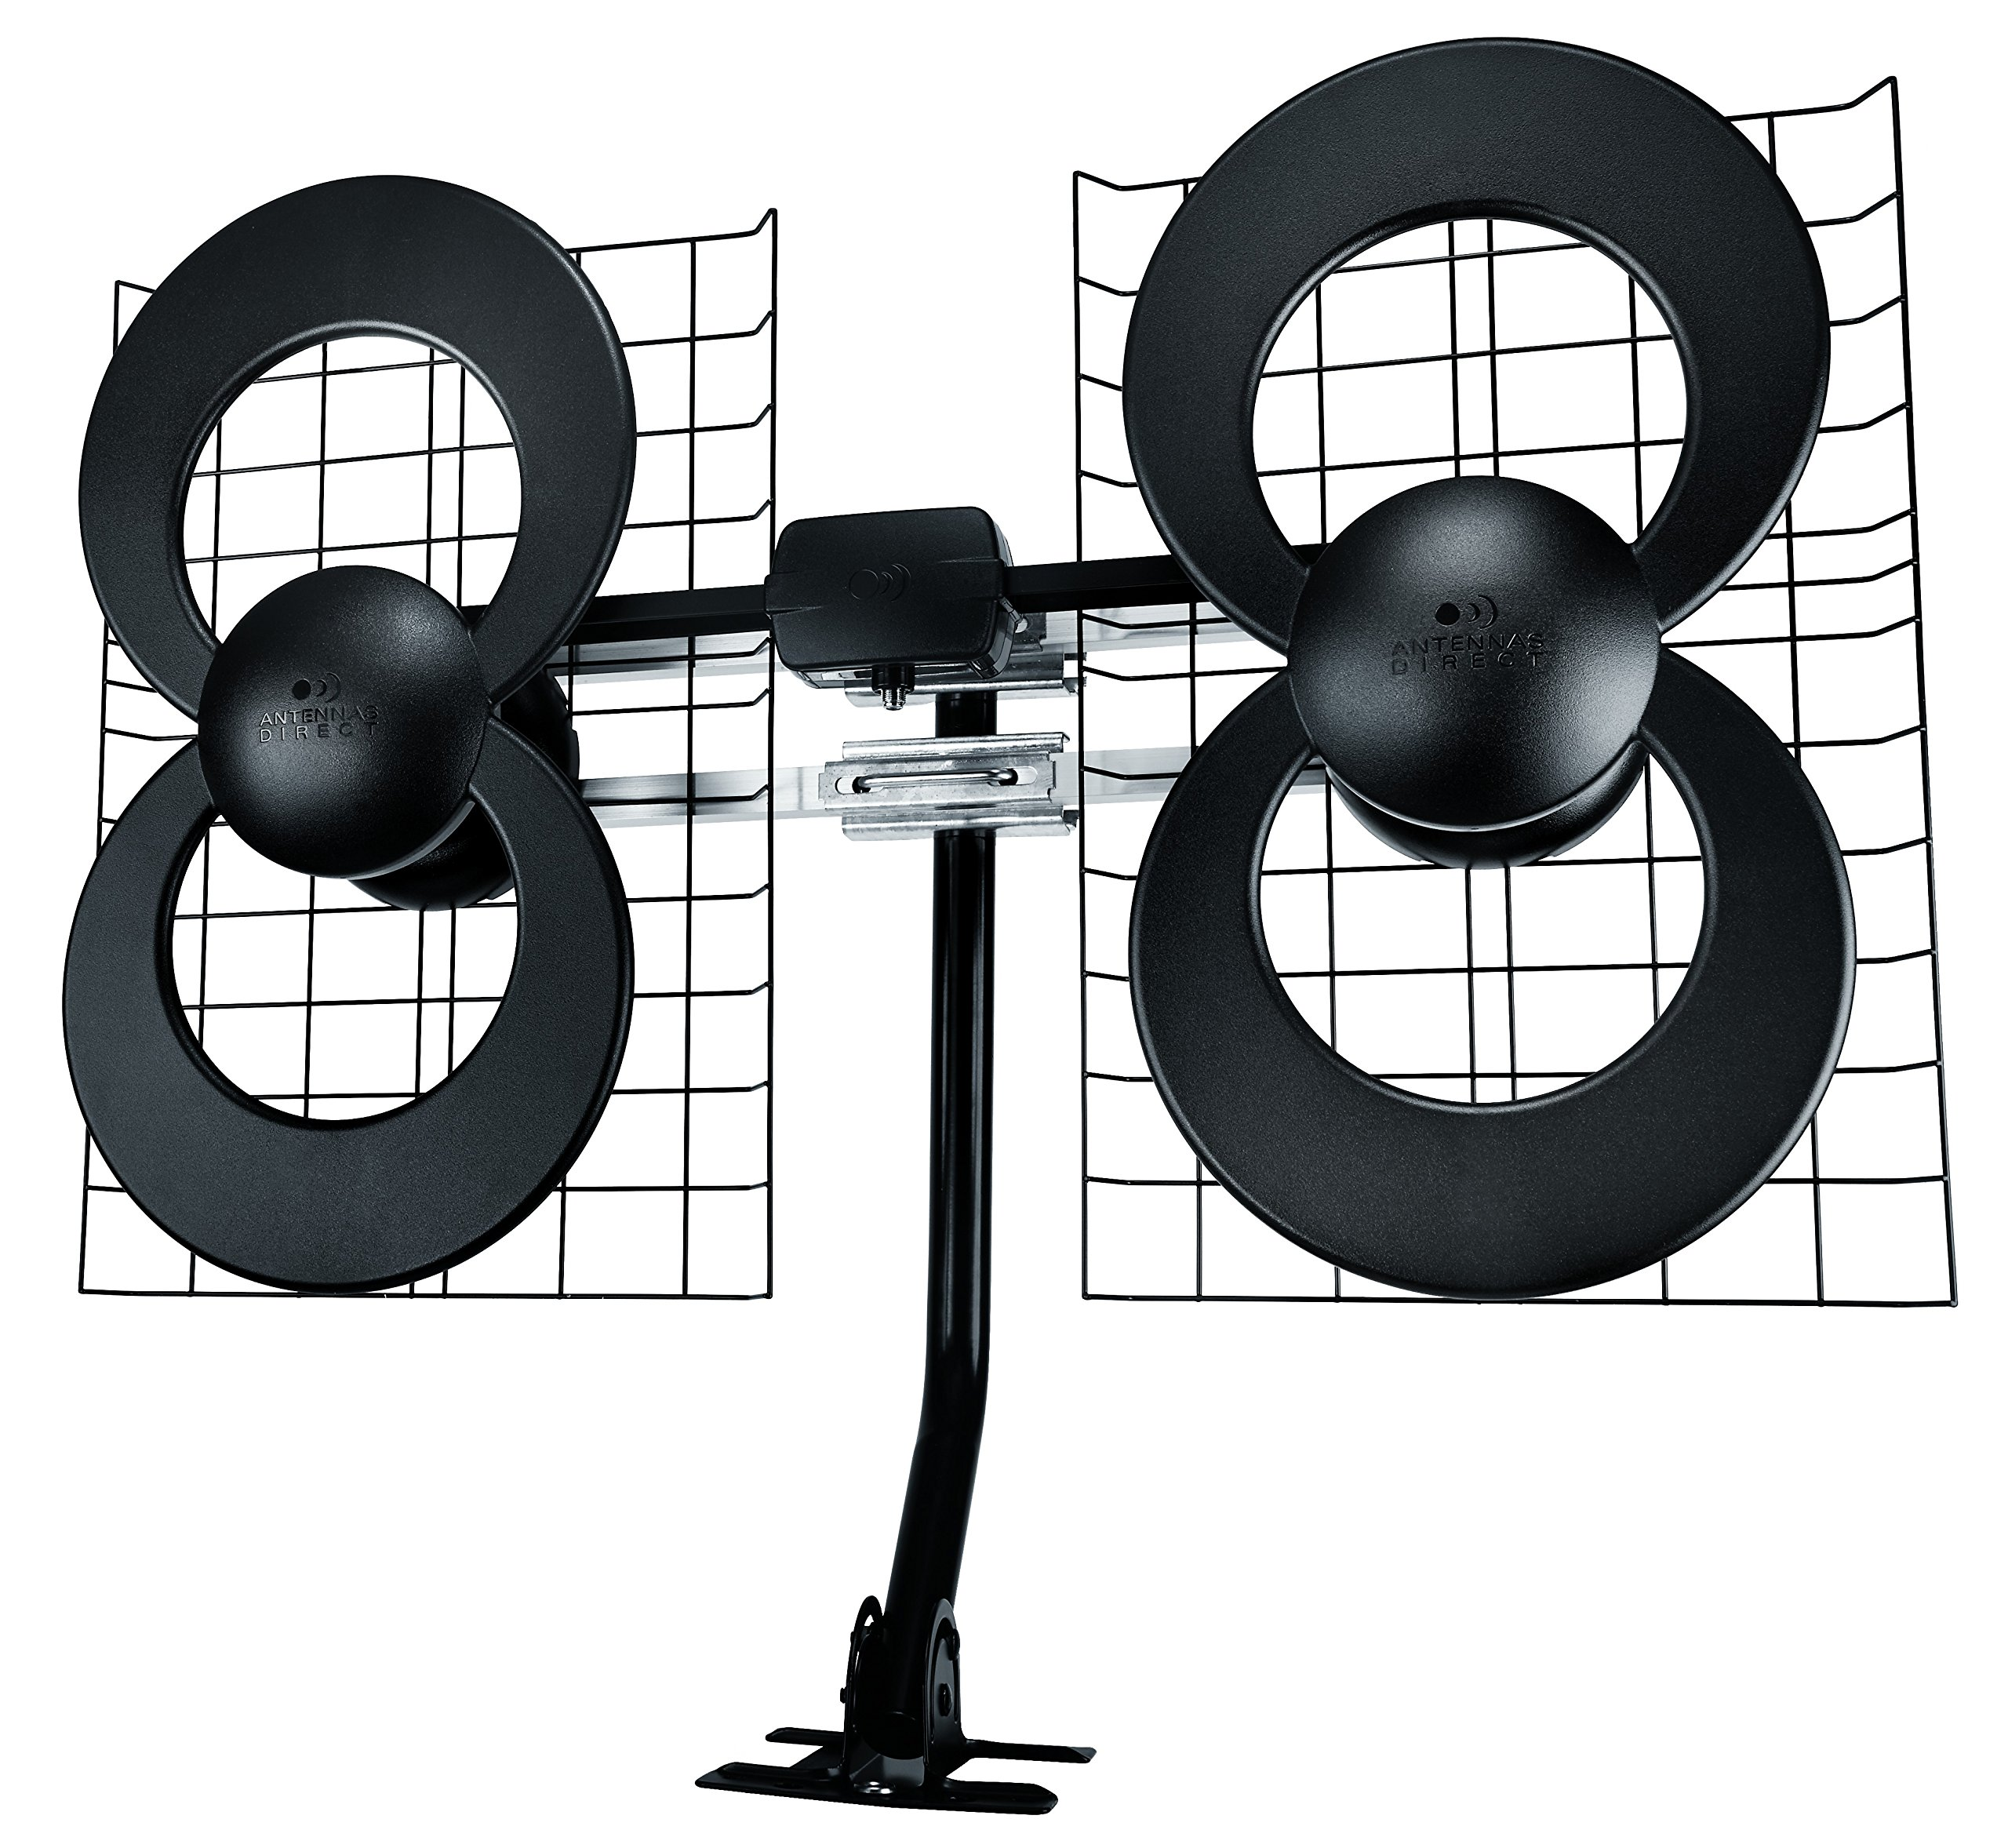 Antennas Direct ClearStream 4 TV Antenna, 70+ Mile Range, UHF/VHF, Multi-directional, Indoor, Attic, Outdoor, Mast w/Pivoting Base/Hardware/Adjustable Clamp/Sealing Pads, 4K Ready, Black - C4-CJM by Antennas Direct